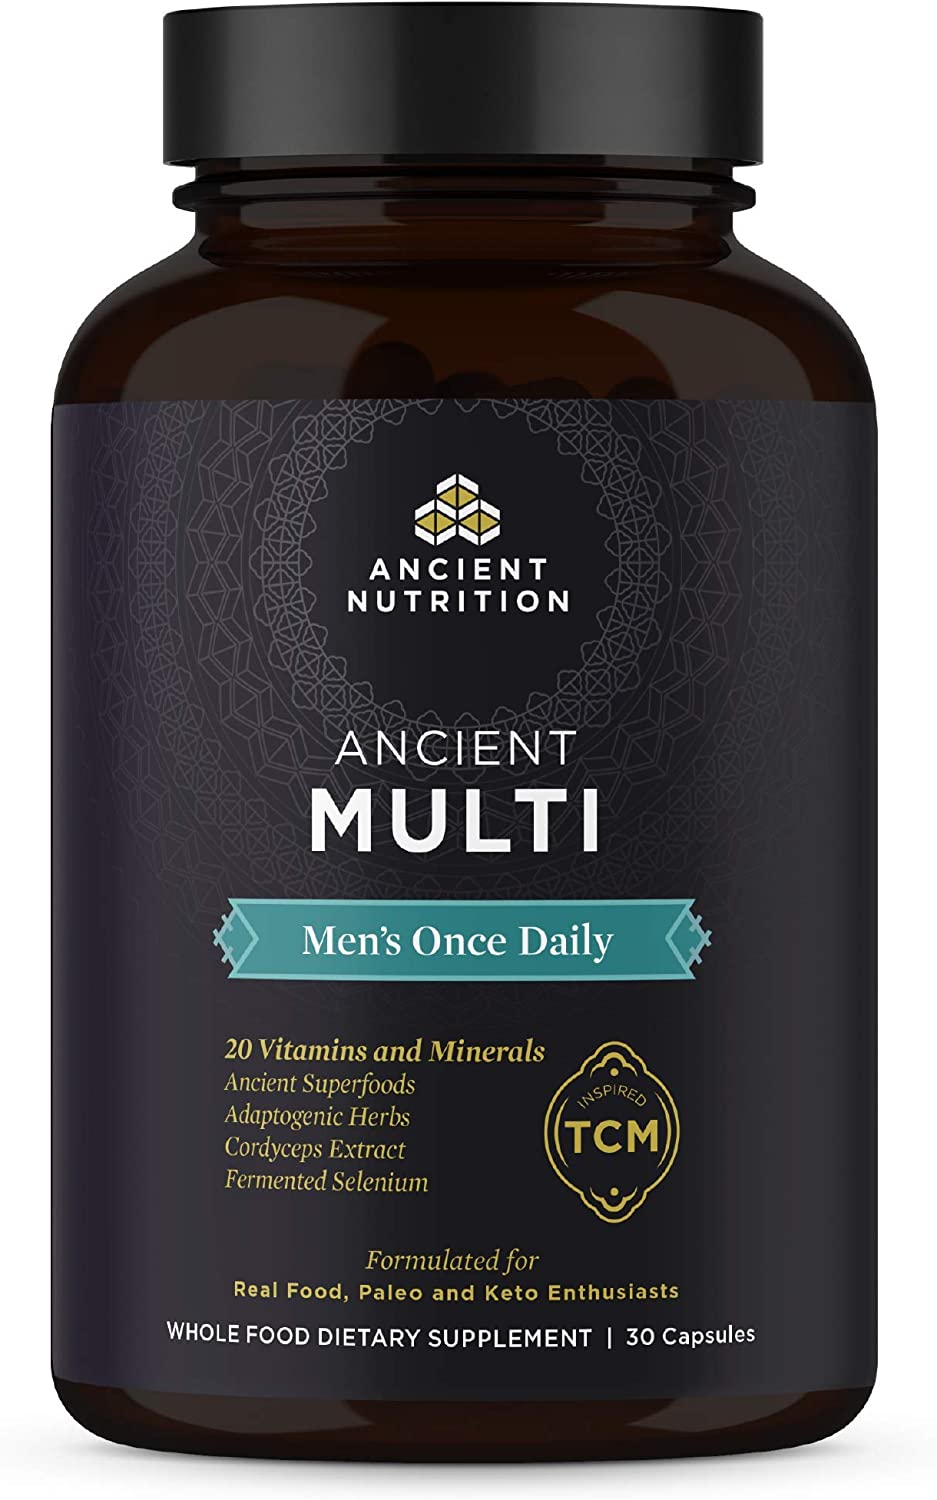 Ancient Nutrition, Ancient Multi Men s Once Daily – 20 Vitamins Minerals, Adaptogenic Herbs, Paleo Keto Friendly, 30 Capsules